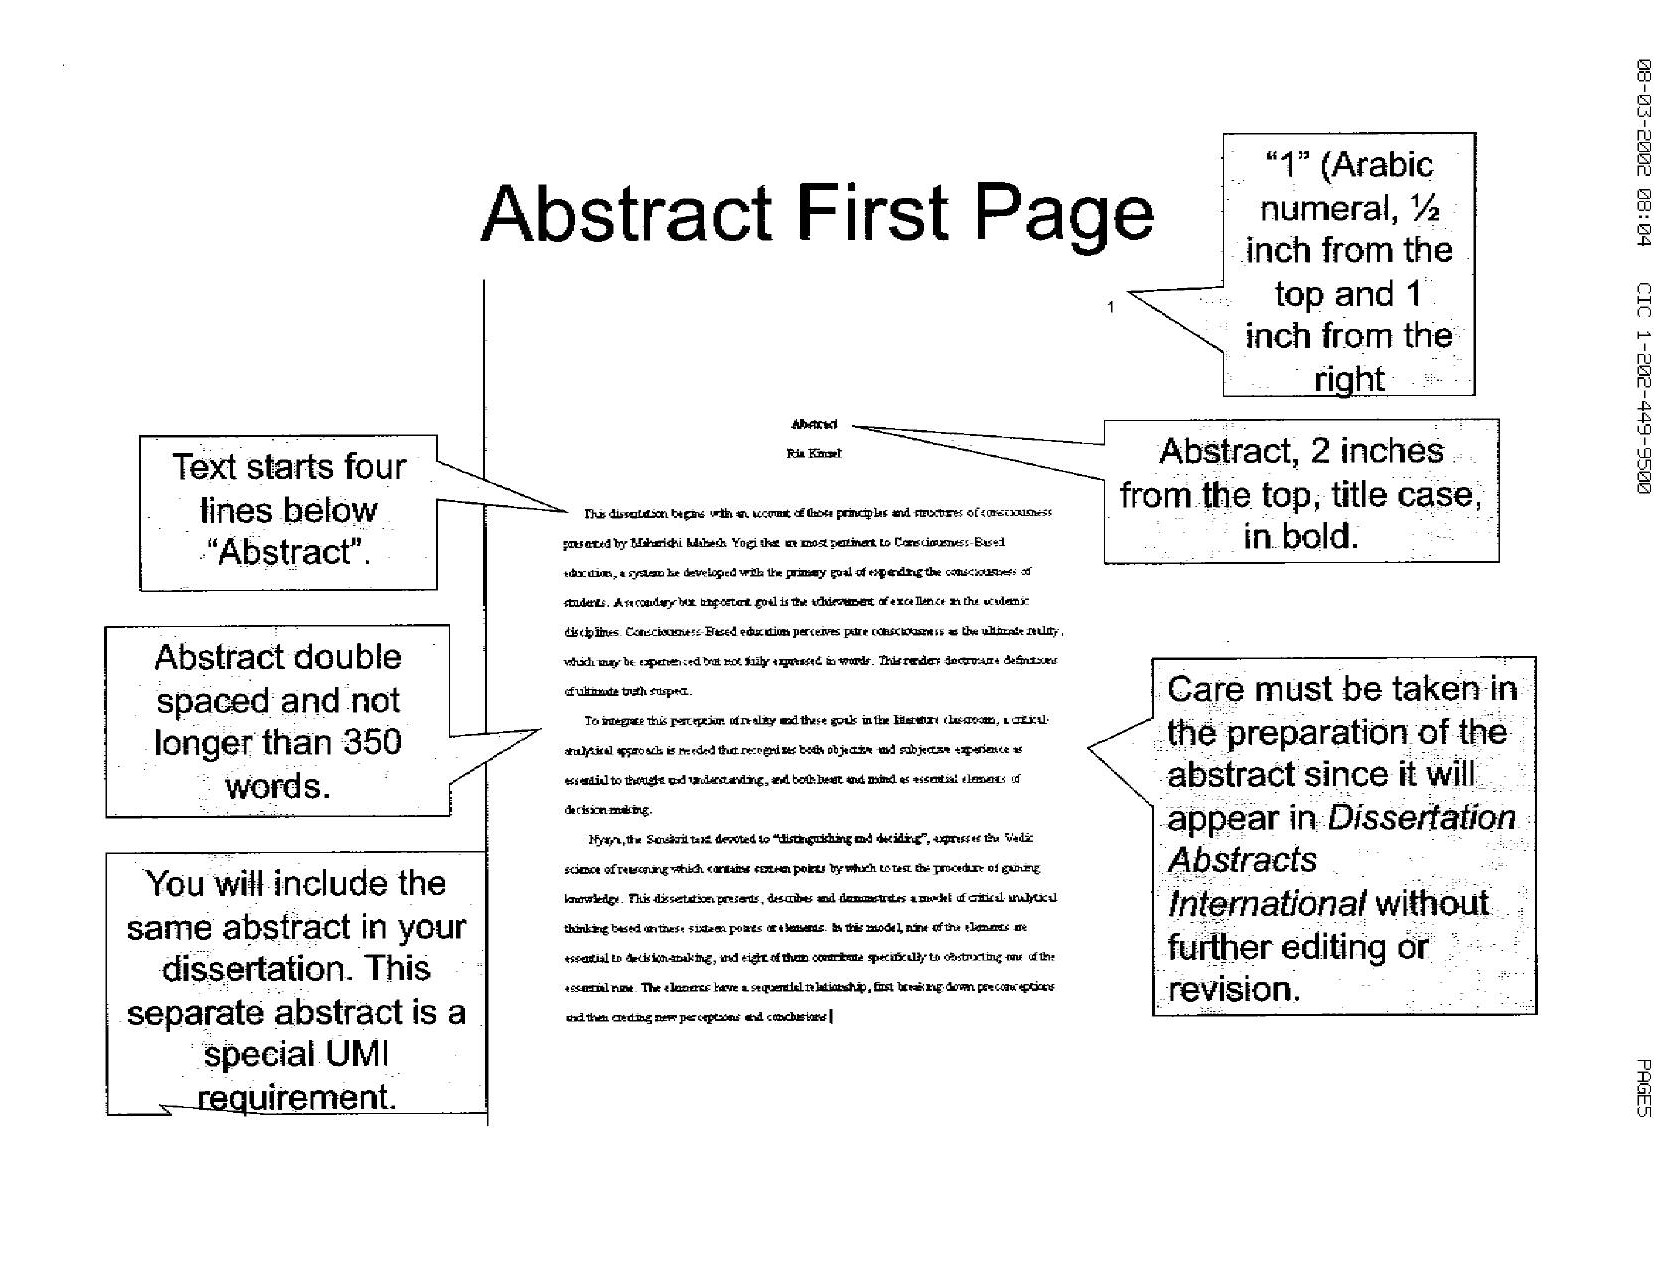 doctoral thesis criteria Grading criteria the thesis statement is a road map for the dissertation: guidelines for a doctoral dissertation guidelines for a doctoral dissertation.